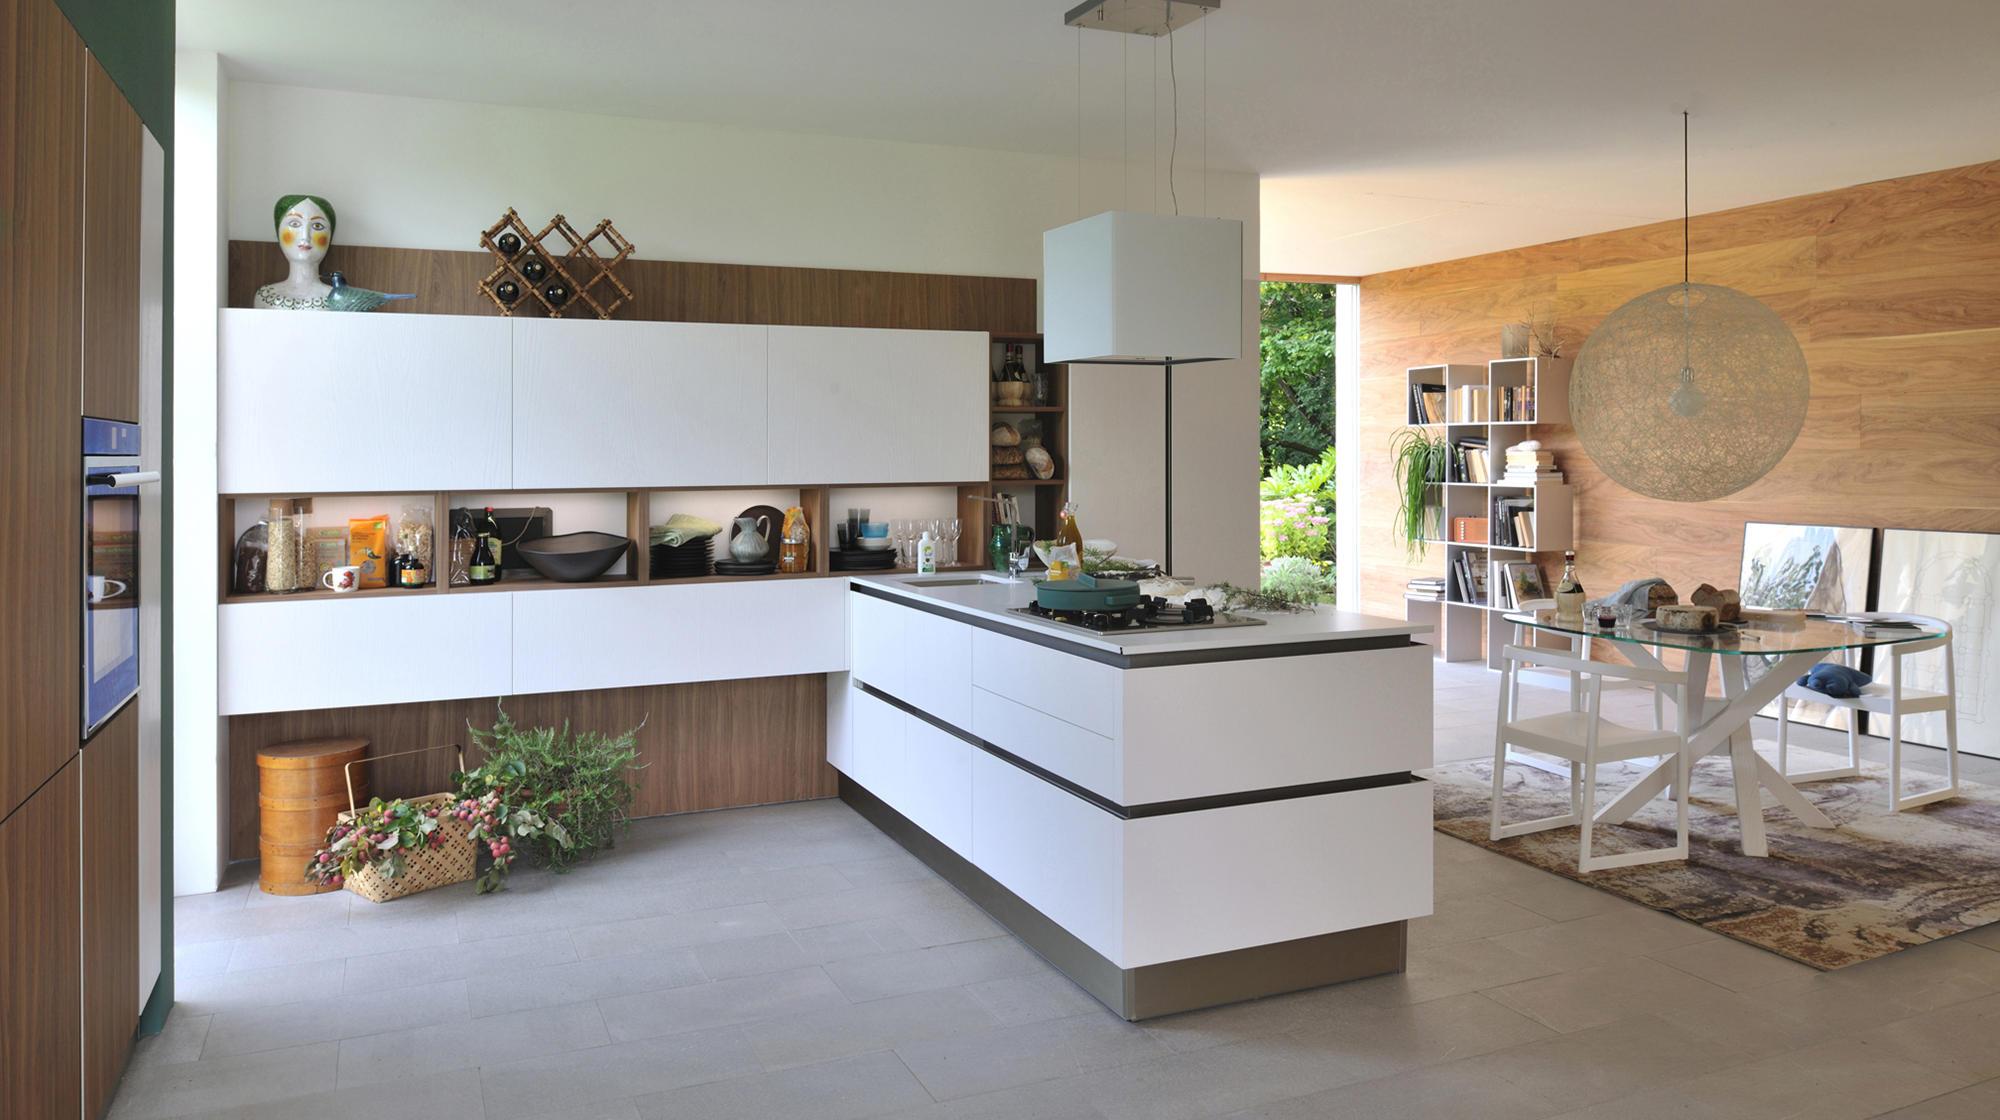 Veneta Cucine Modello Oyster Oyster Pro Fitted Kitchens From Veneta Cucine Architonic